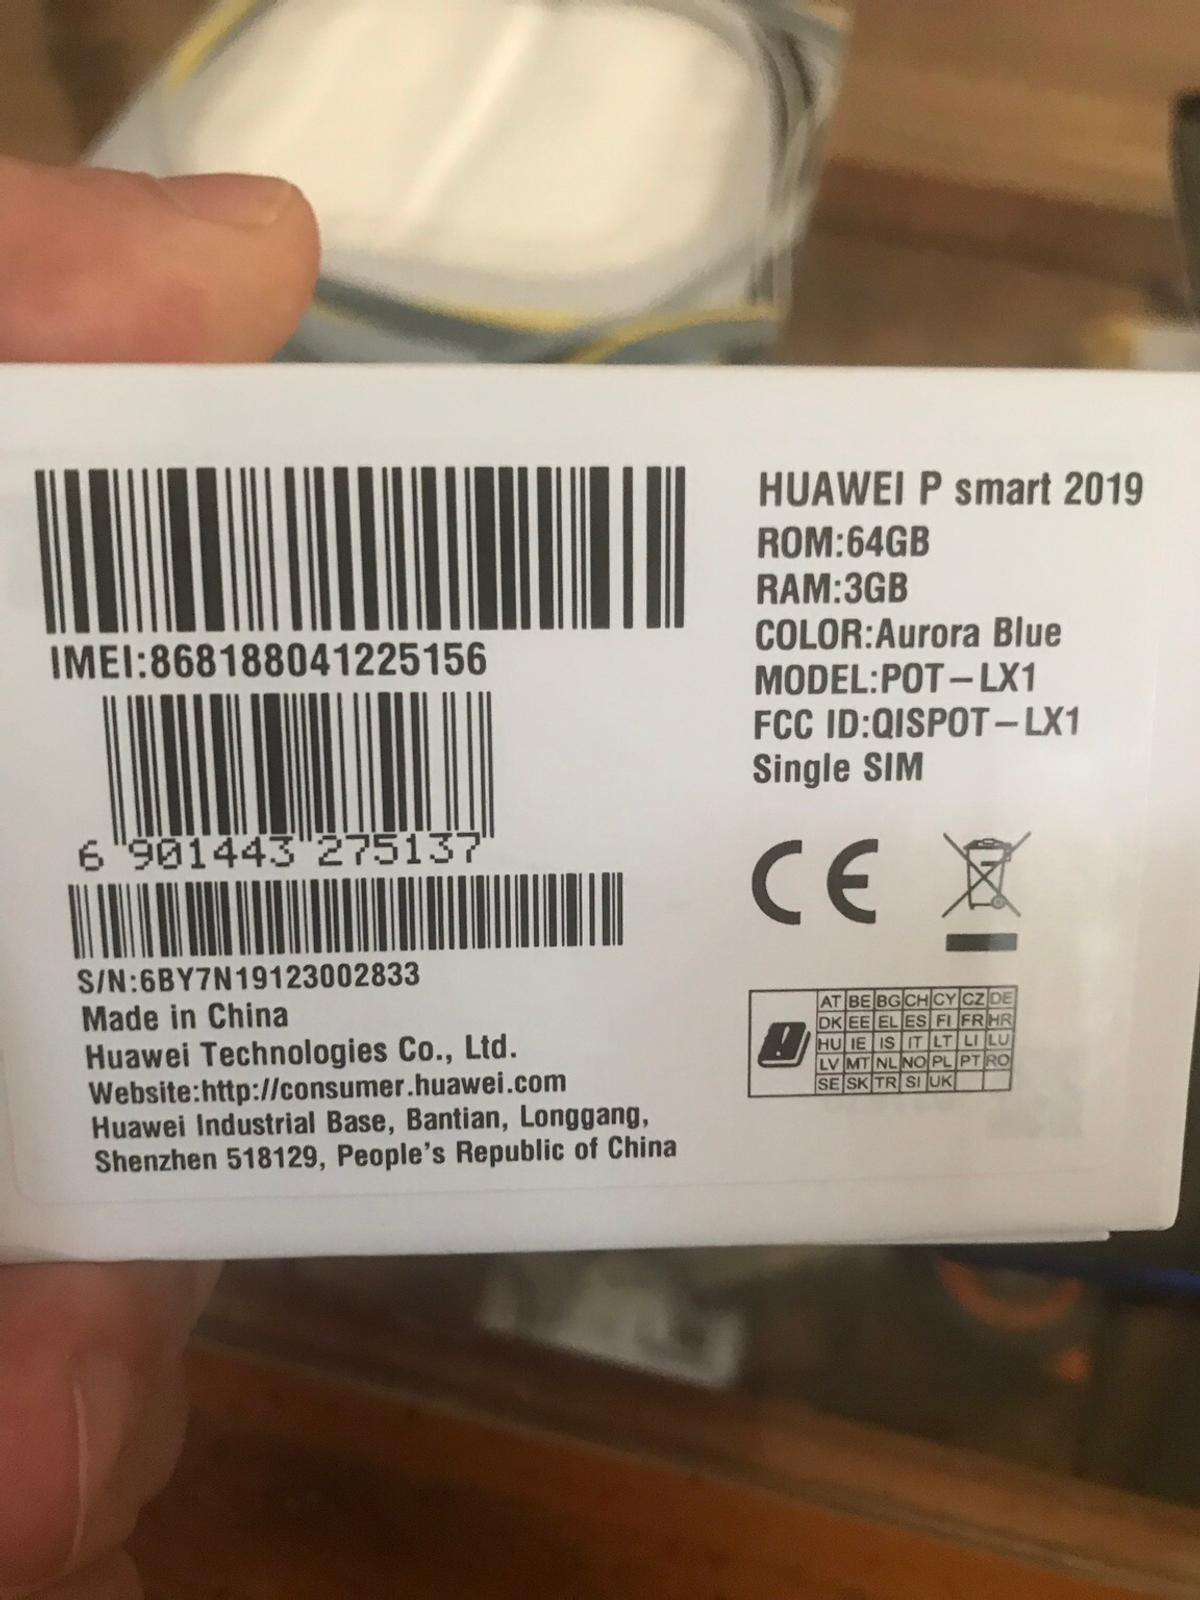 Huawei p smart 2019 in HA3 London for £145 00 for sale - Shpock